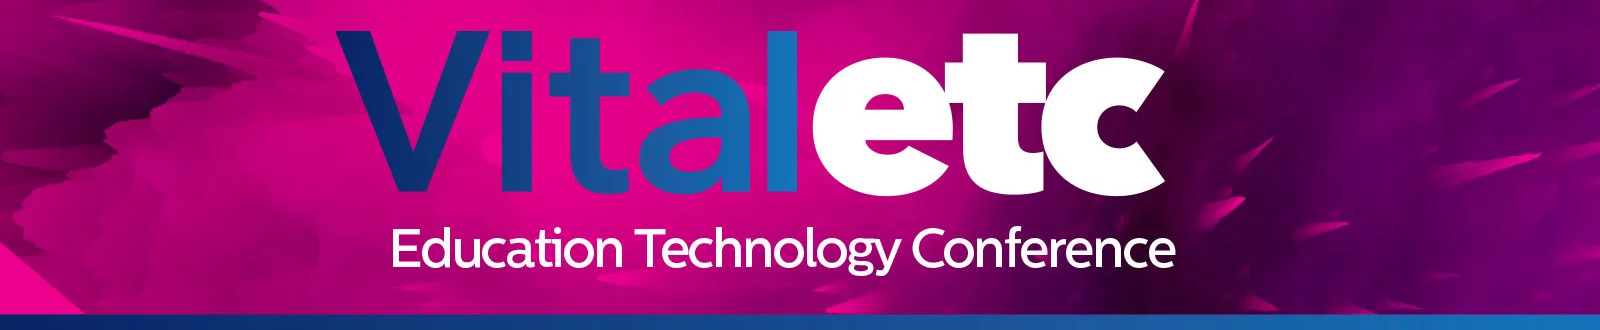 Vital ETC - Education Technology Conference